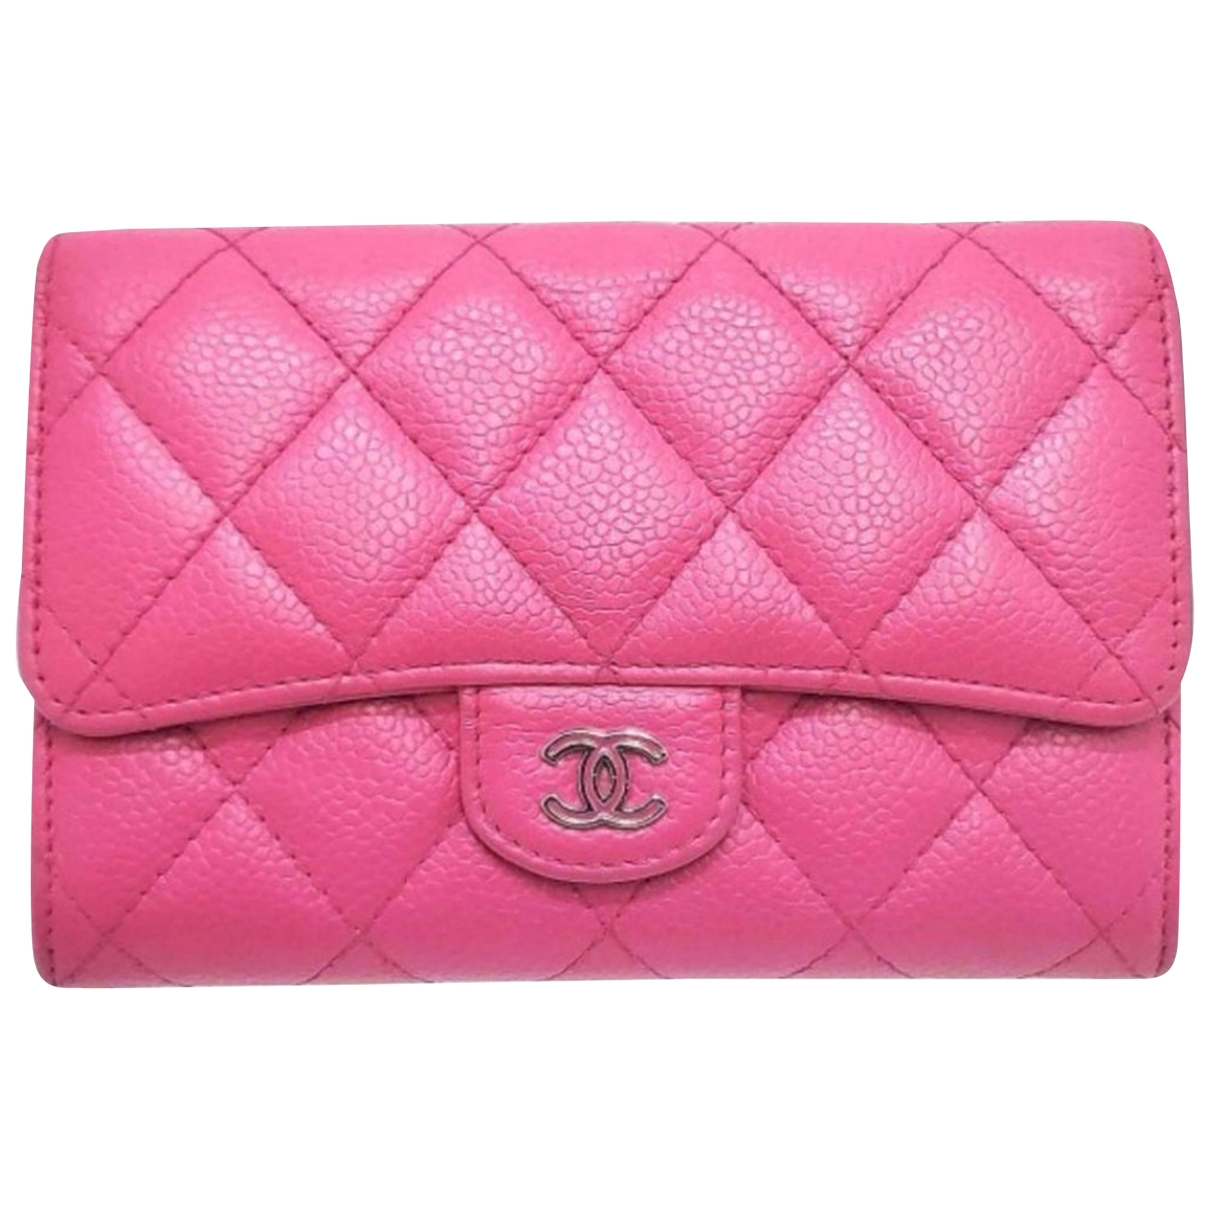 Chanel Timeless/Classique Pink Leather wallet for Women \N